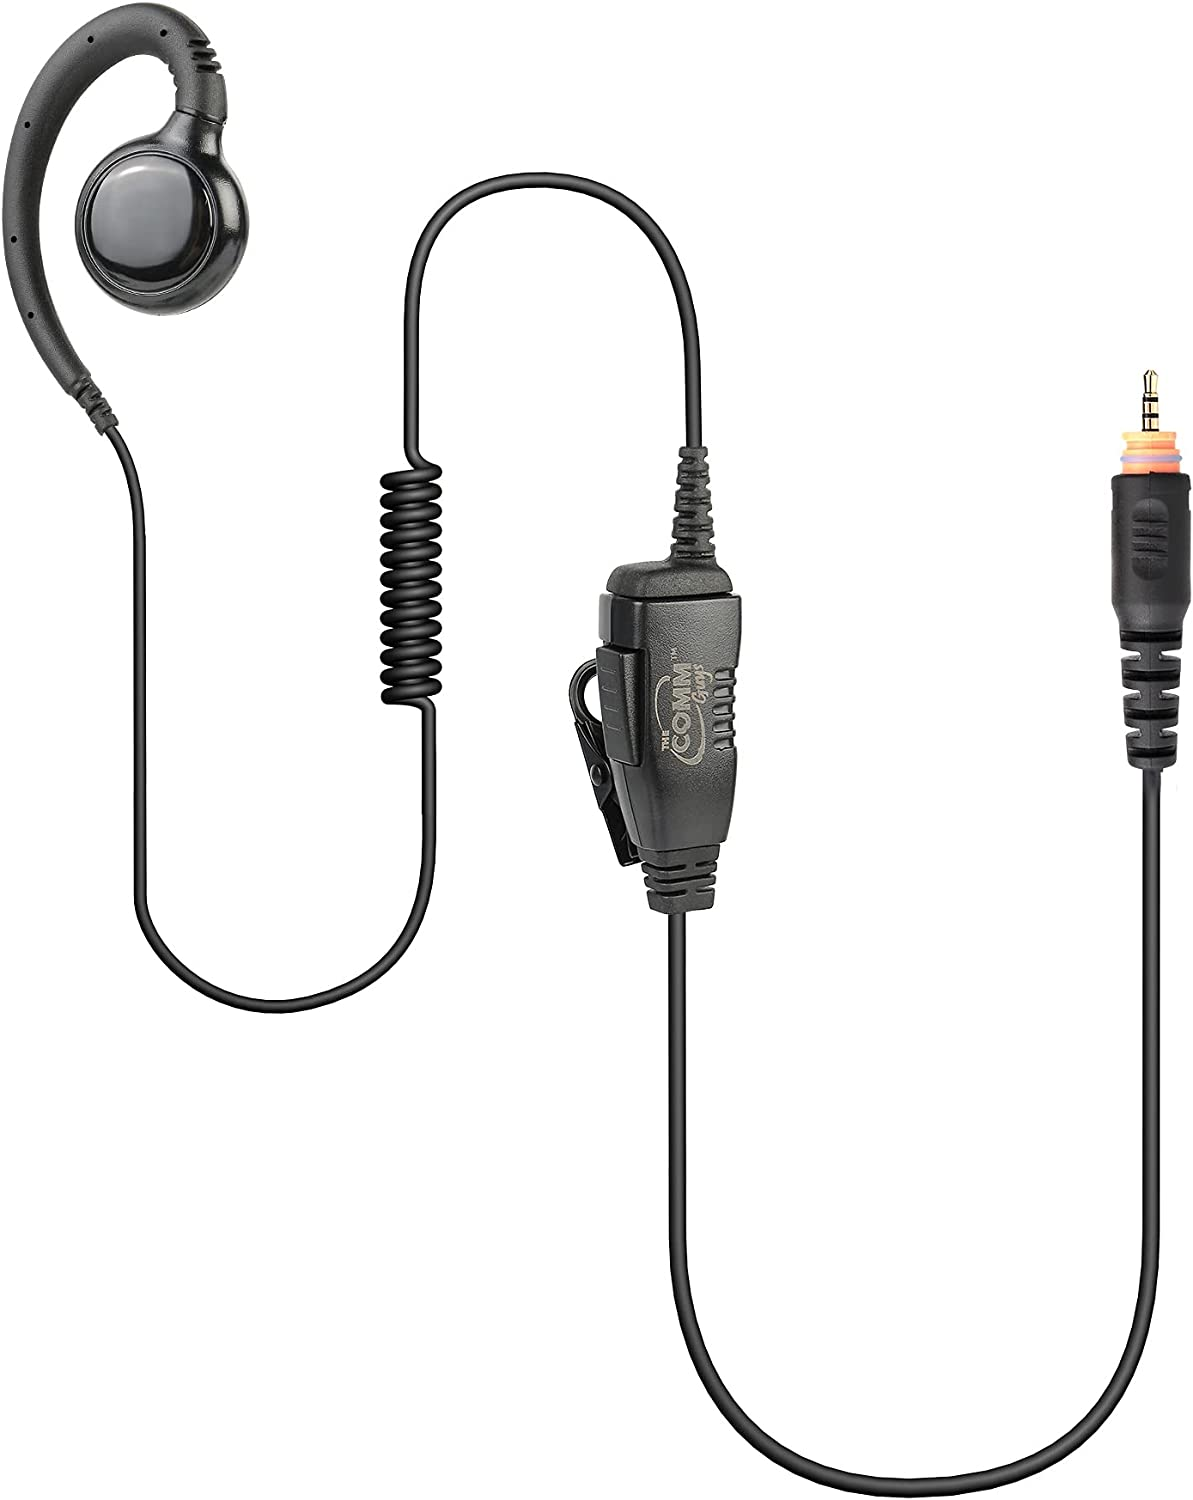 The Comm Guys 1-Wire Swivel and Earpiece Headset Ranking TOP19 Loop Microphone Ranking TOP10